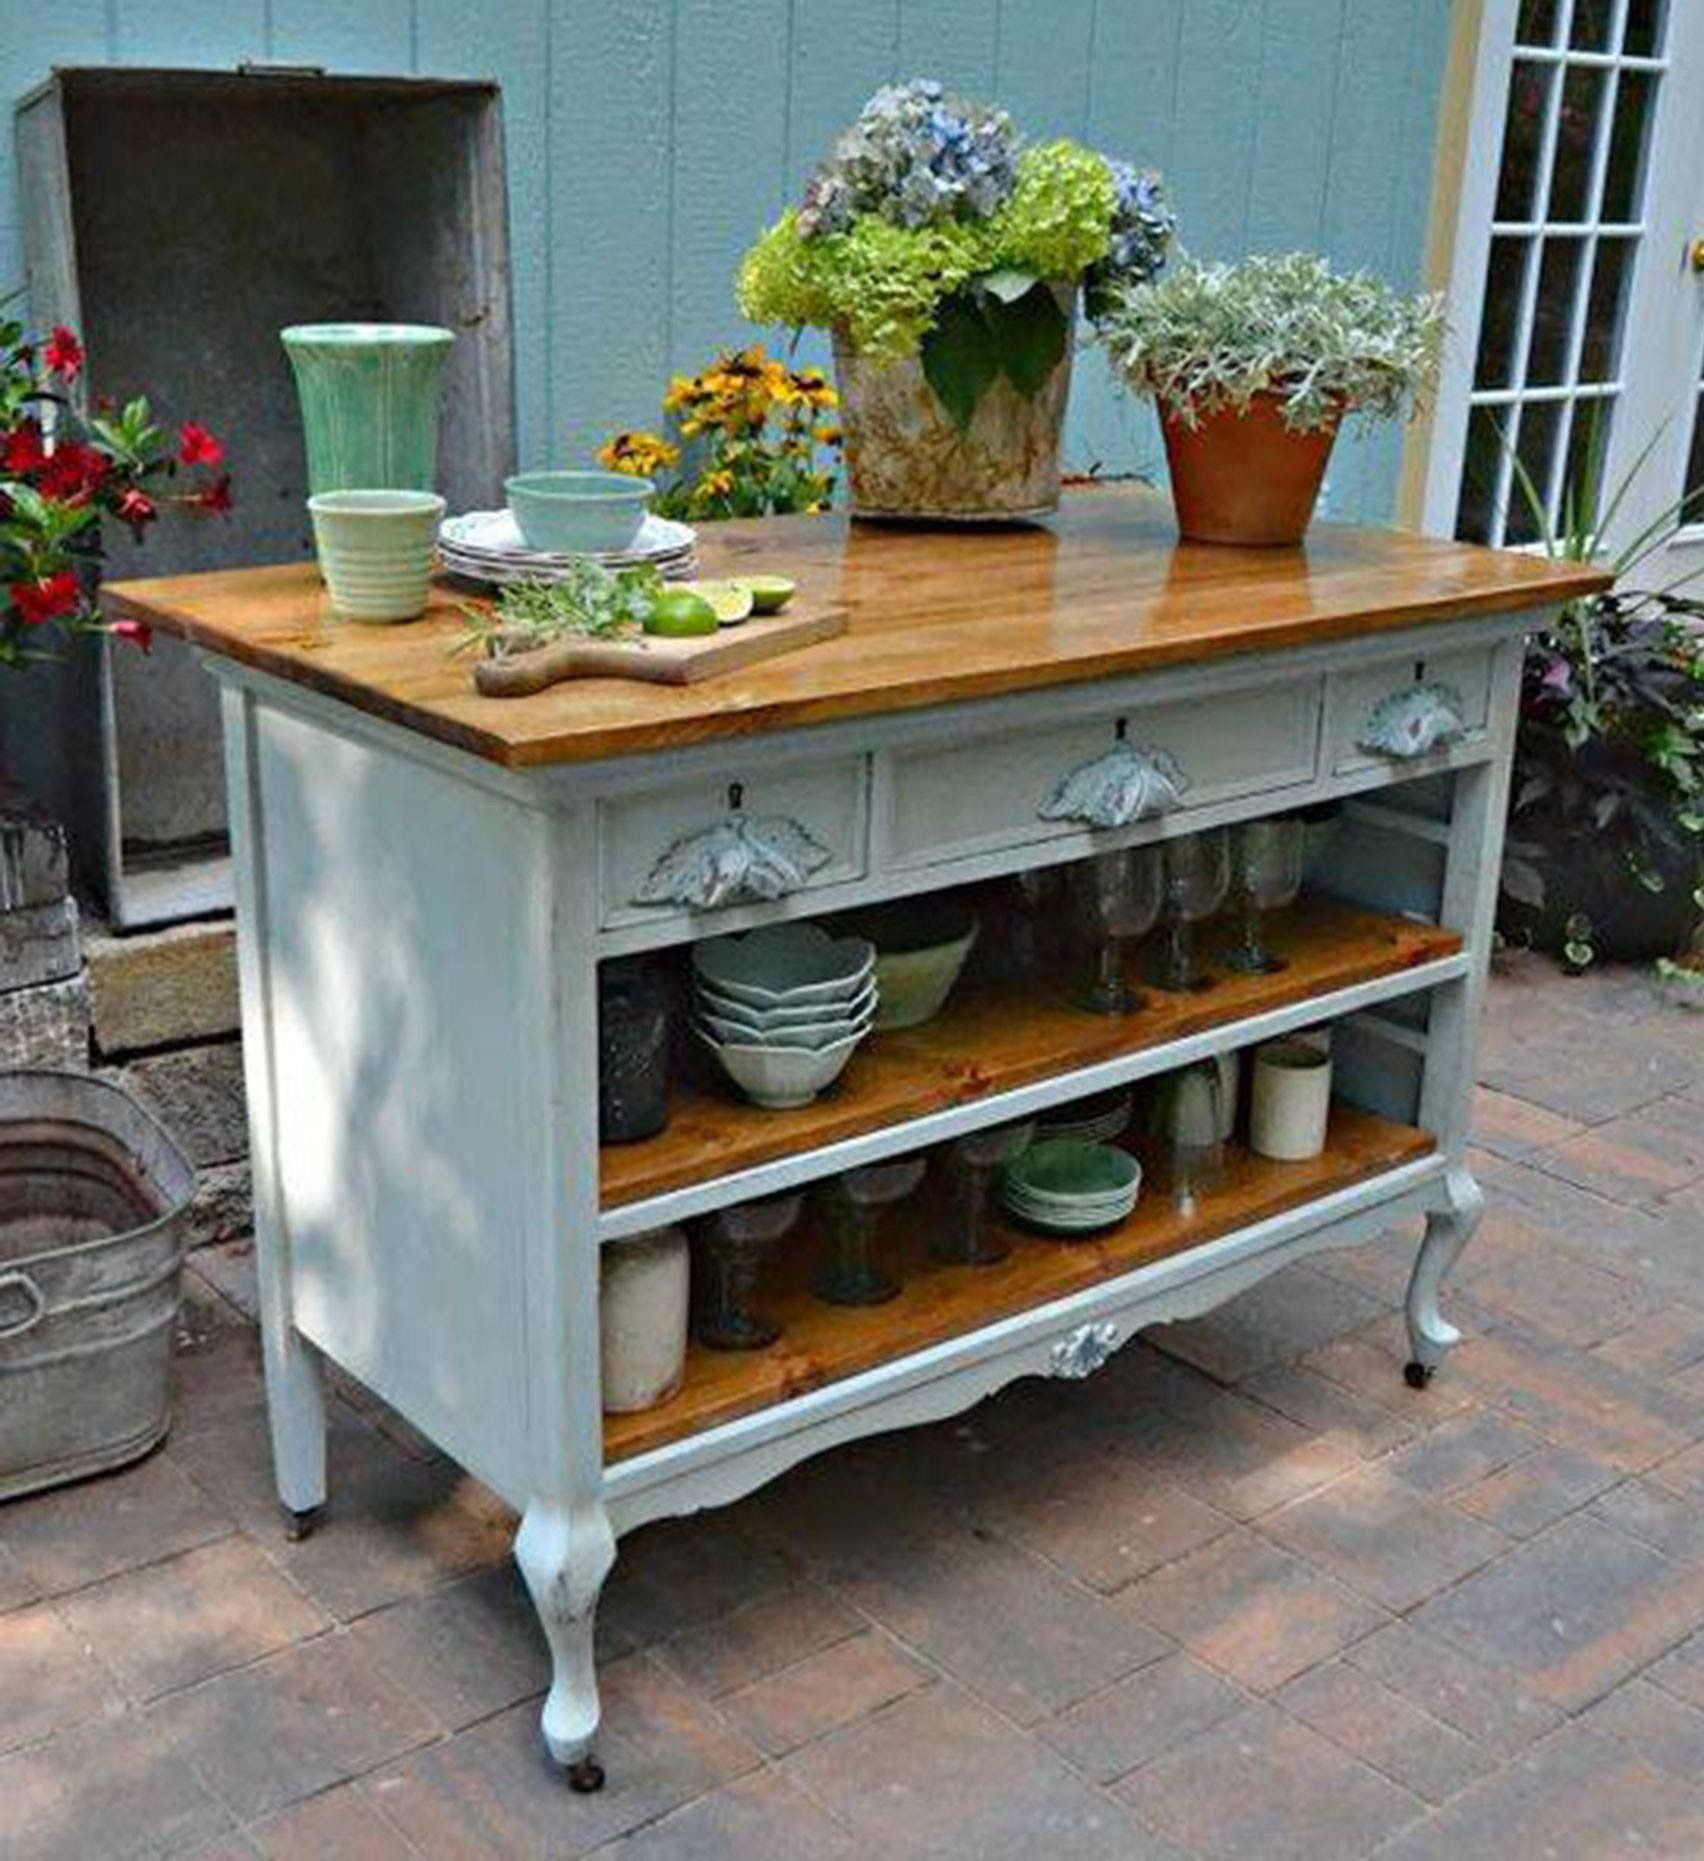 Old dresser converted to kitchen island